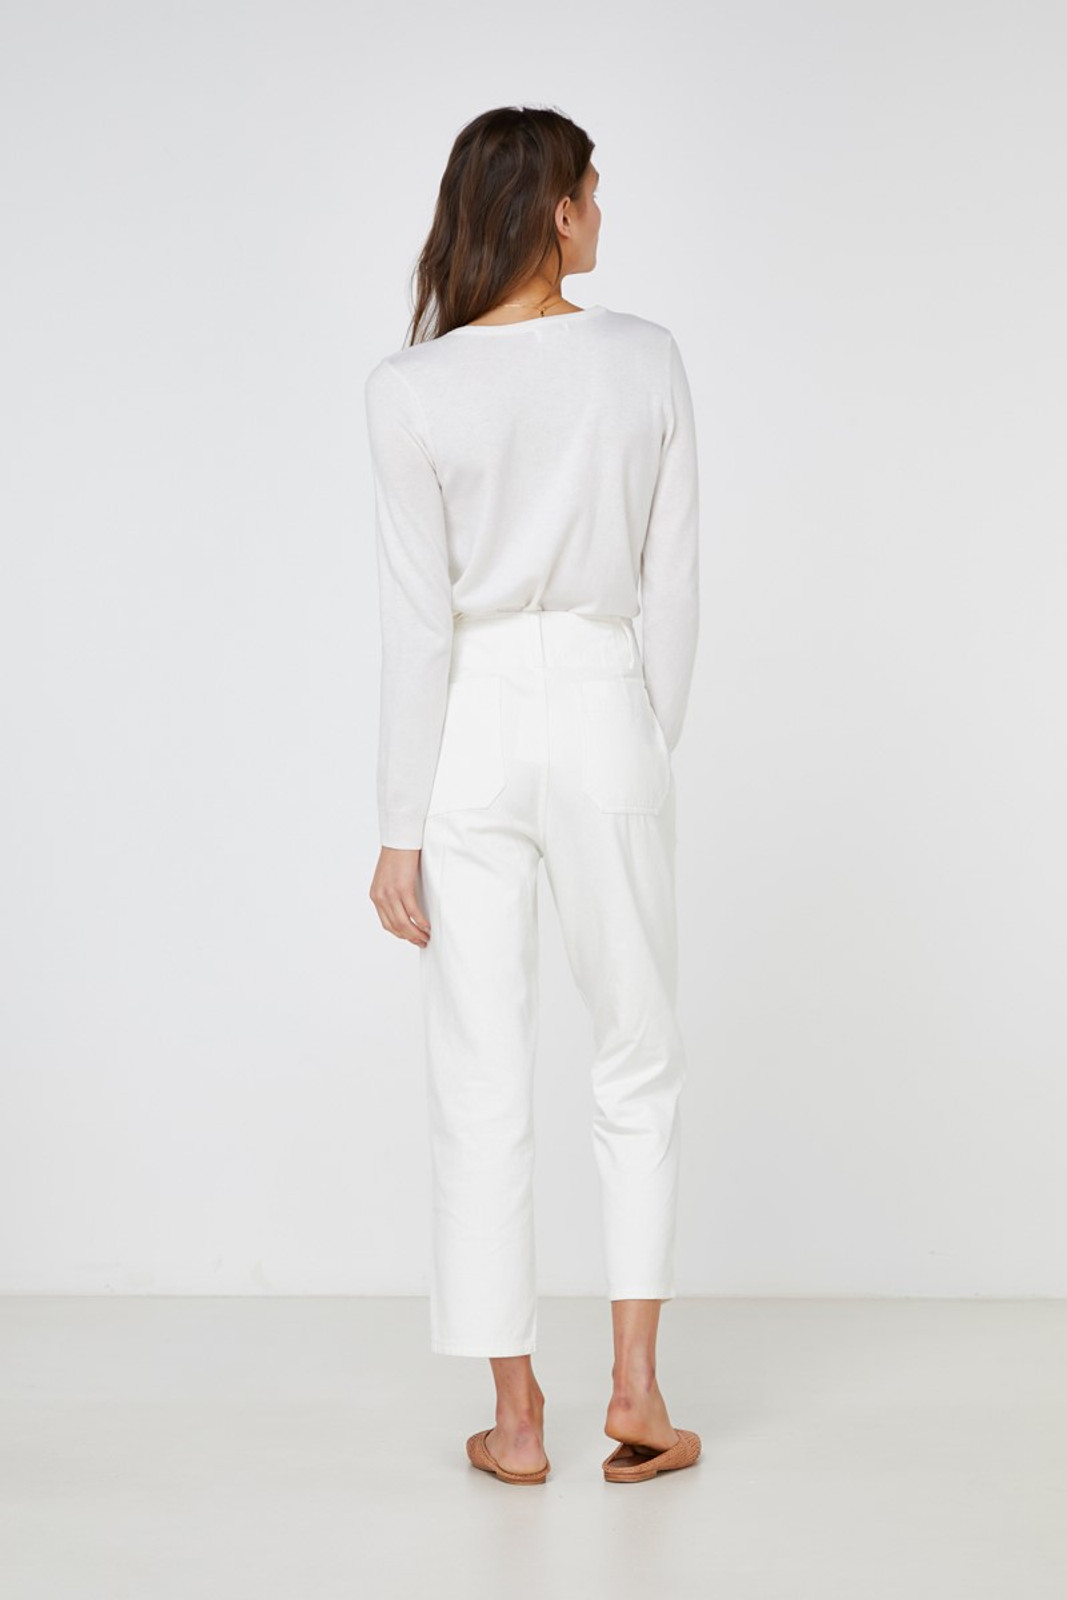 Elka Collective Coastal Jean White  8